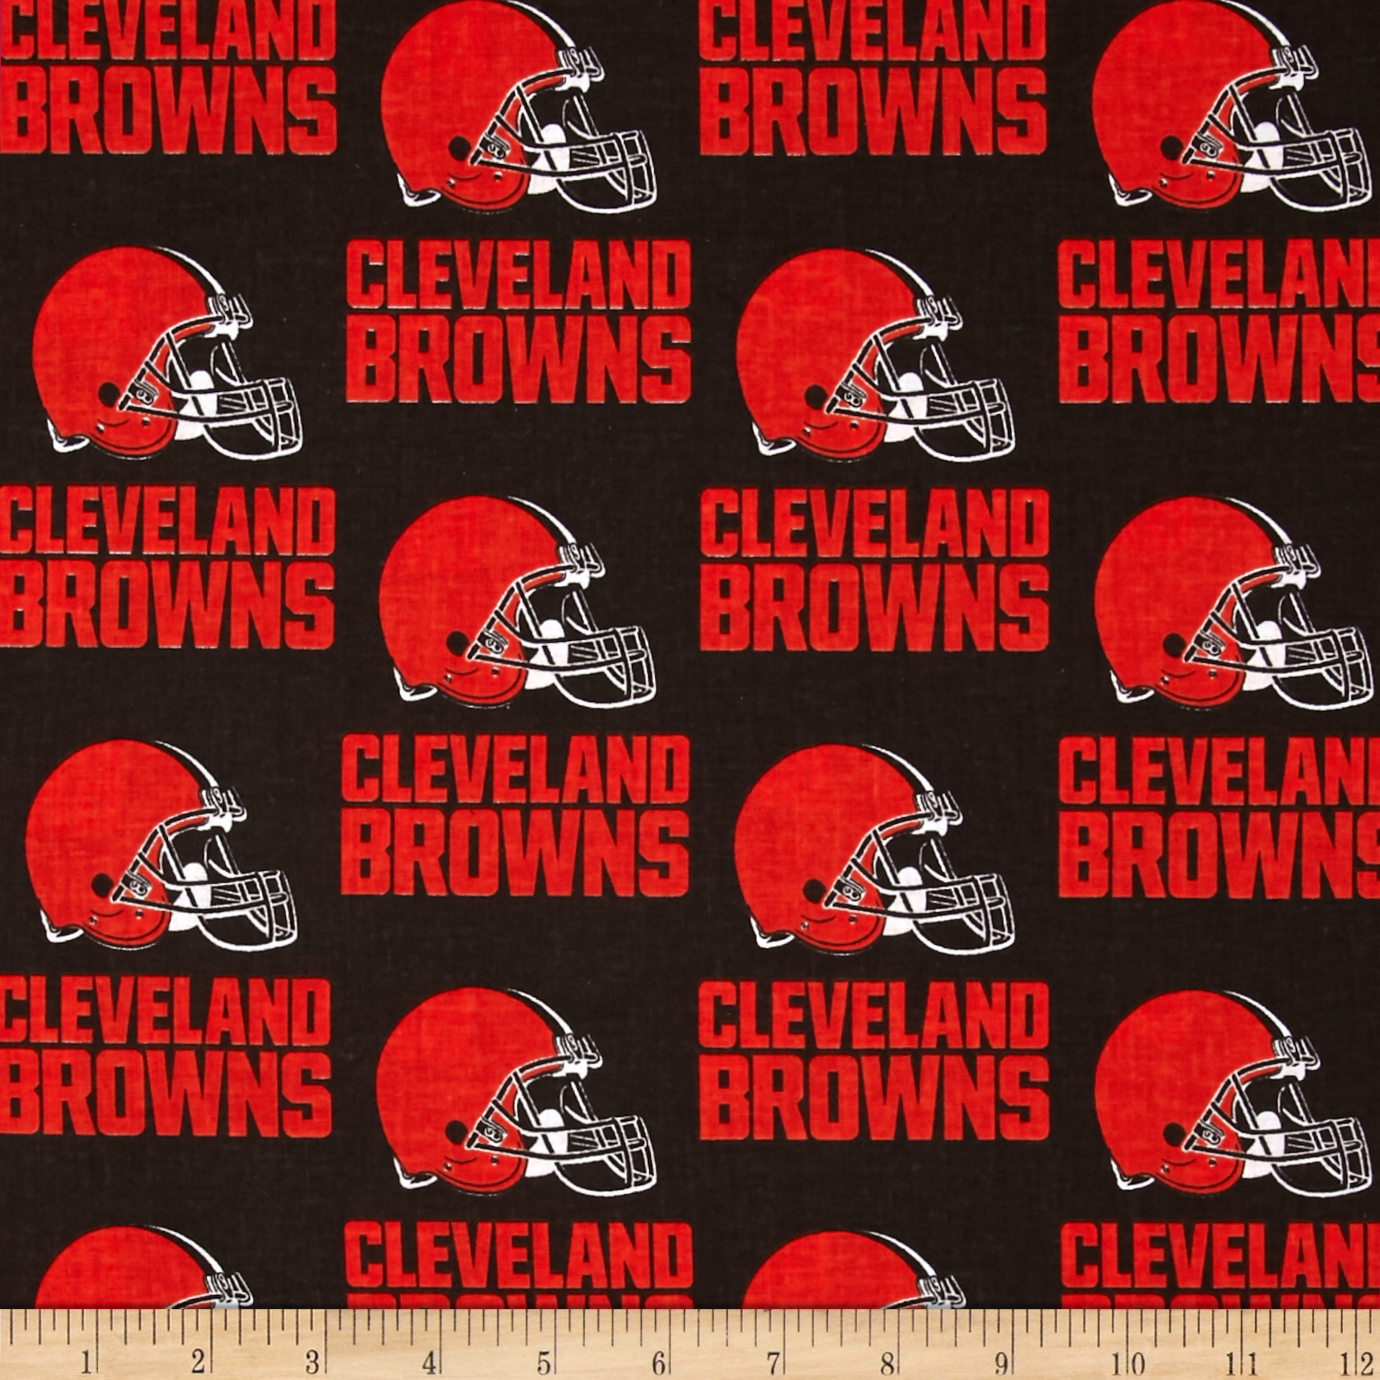 NFL Cotton Broadcloth Cleveland Browns Orange/Brown Fabric by Fabric Traditions in USA